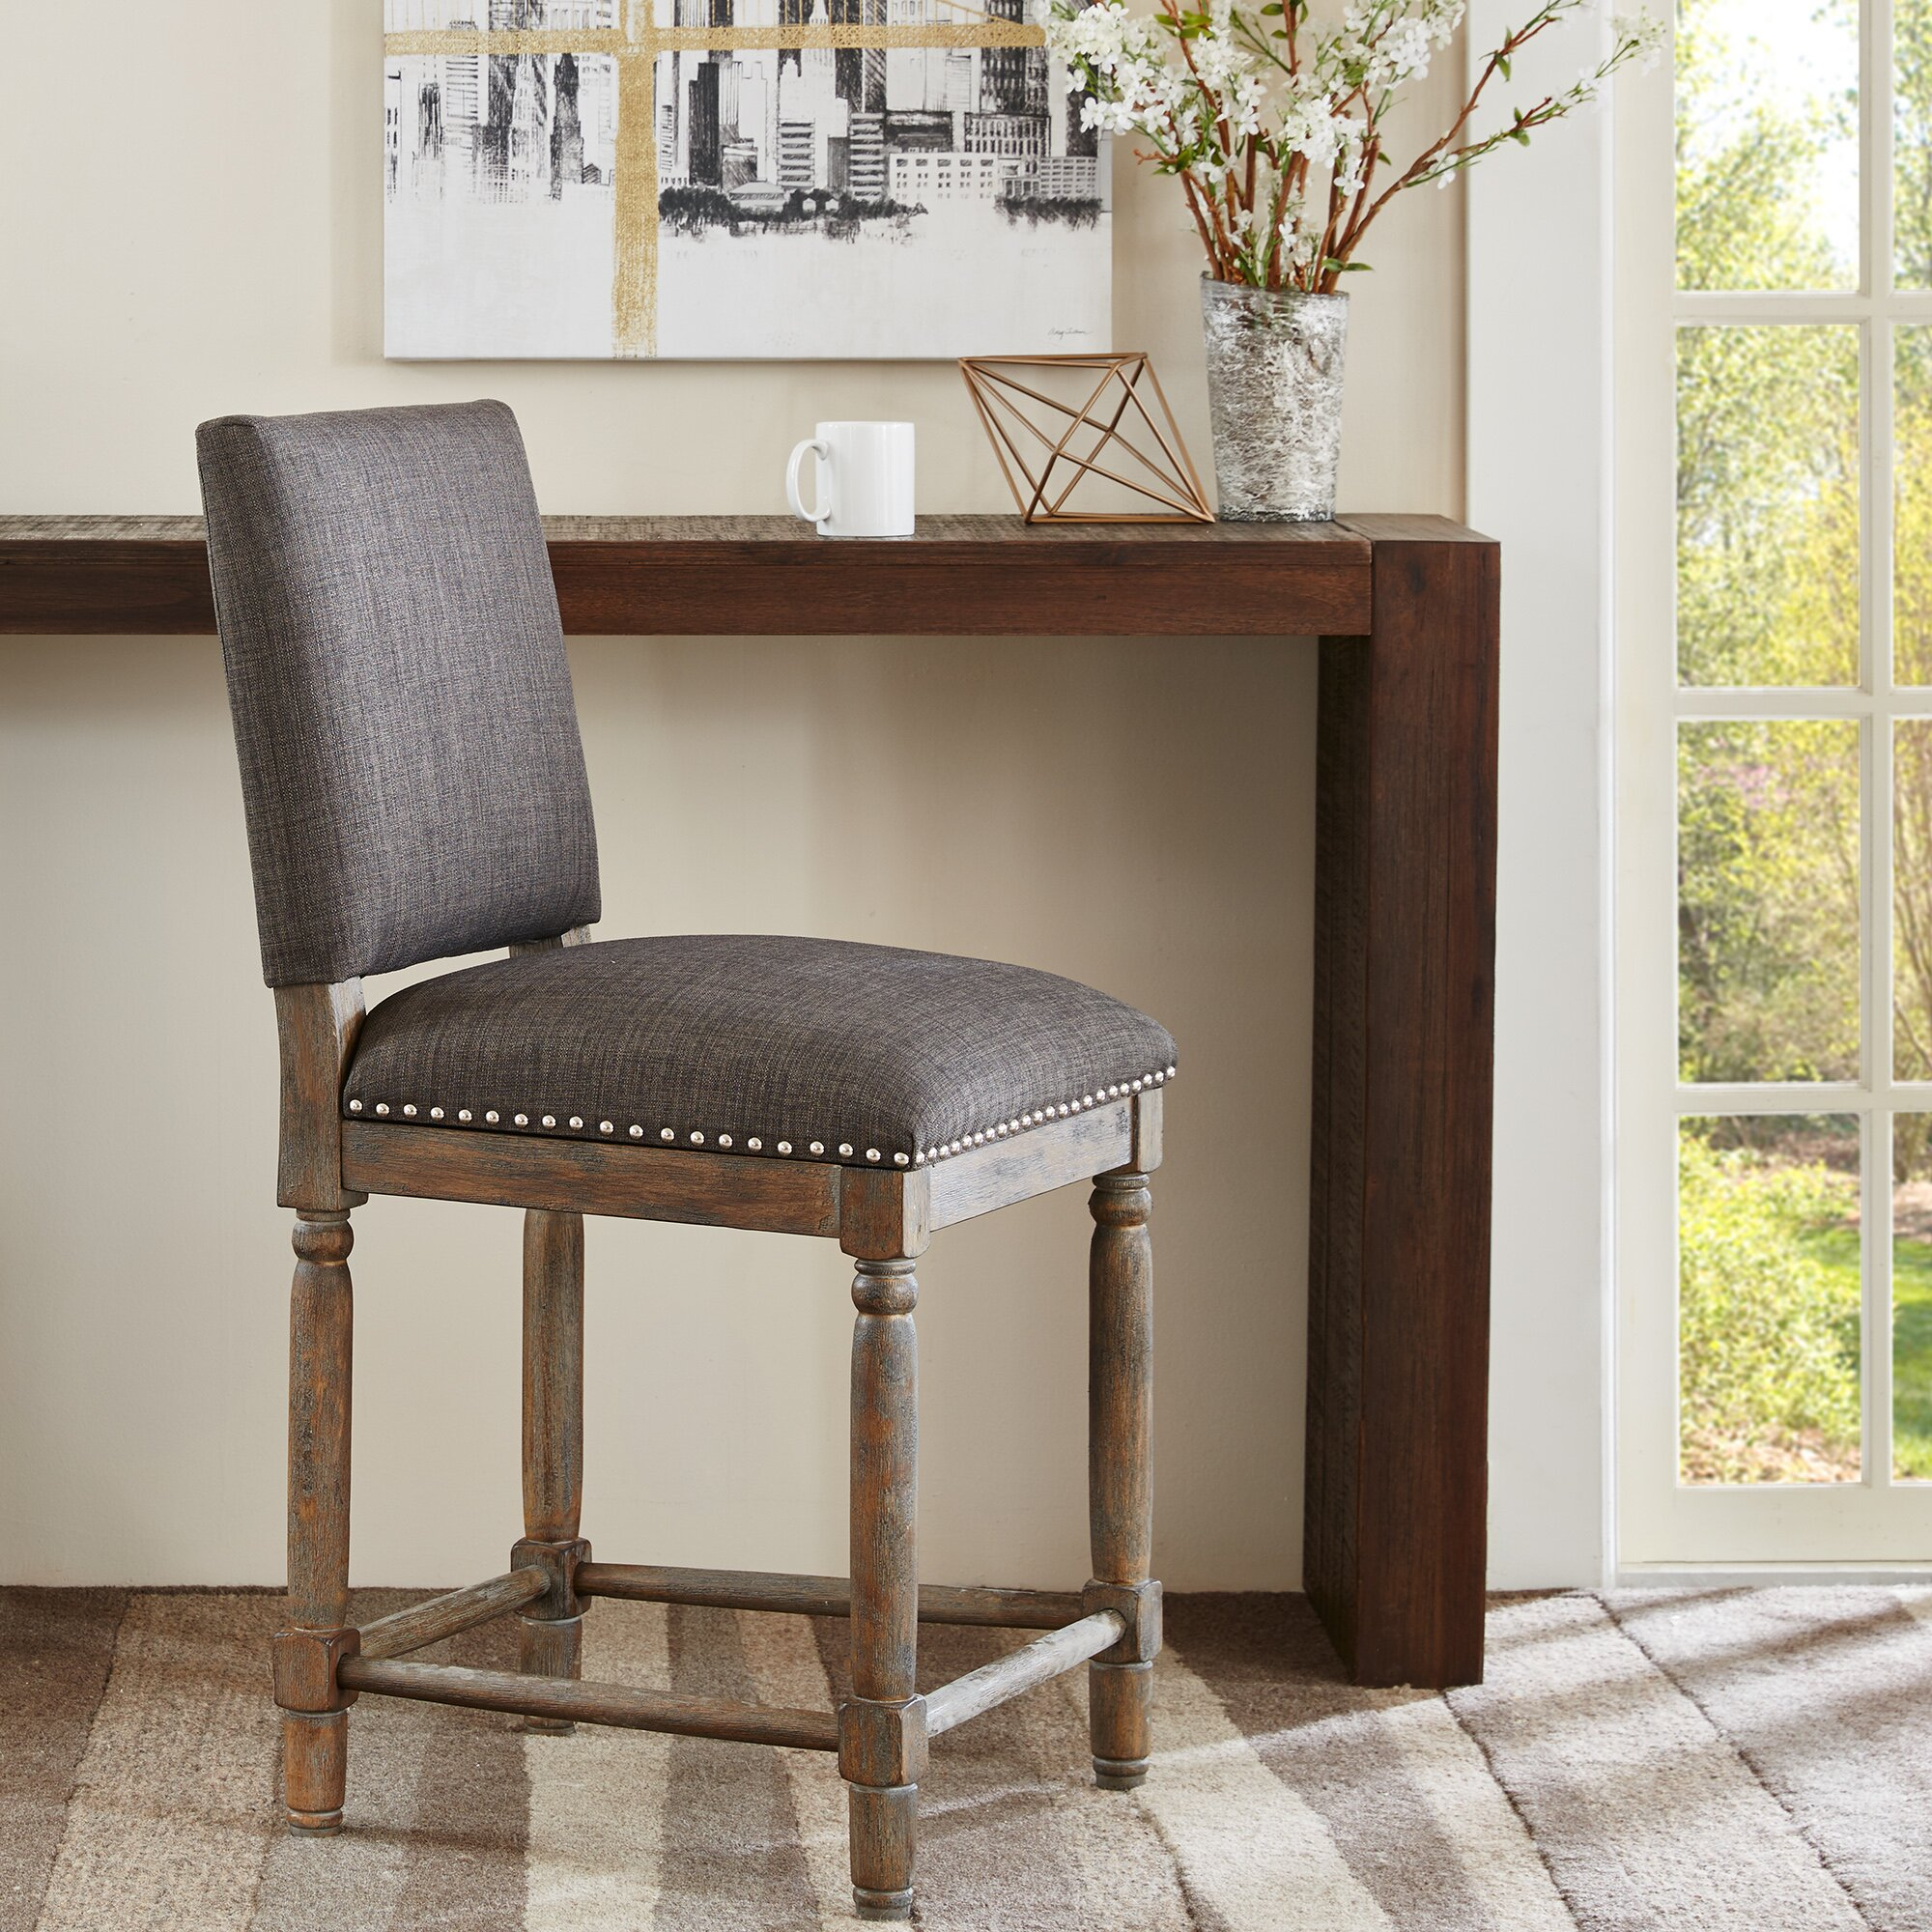 Laurel Foundry Modern Farmhouse Remy 24 Quot Bar Stool